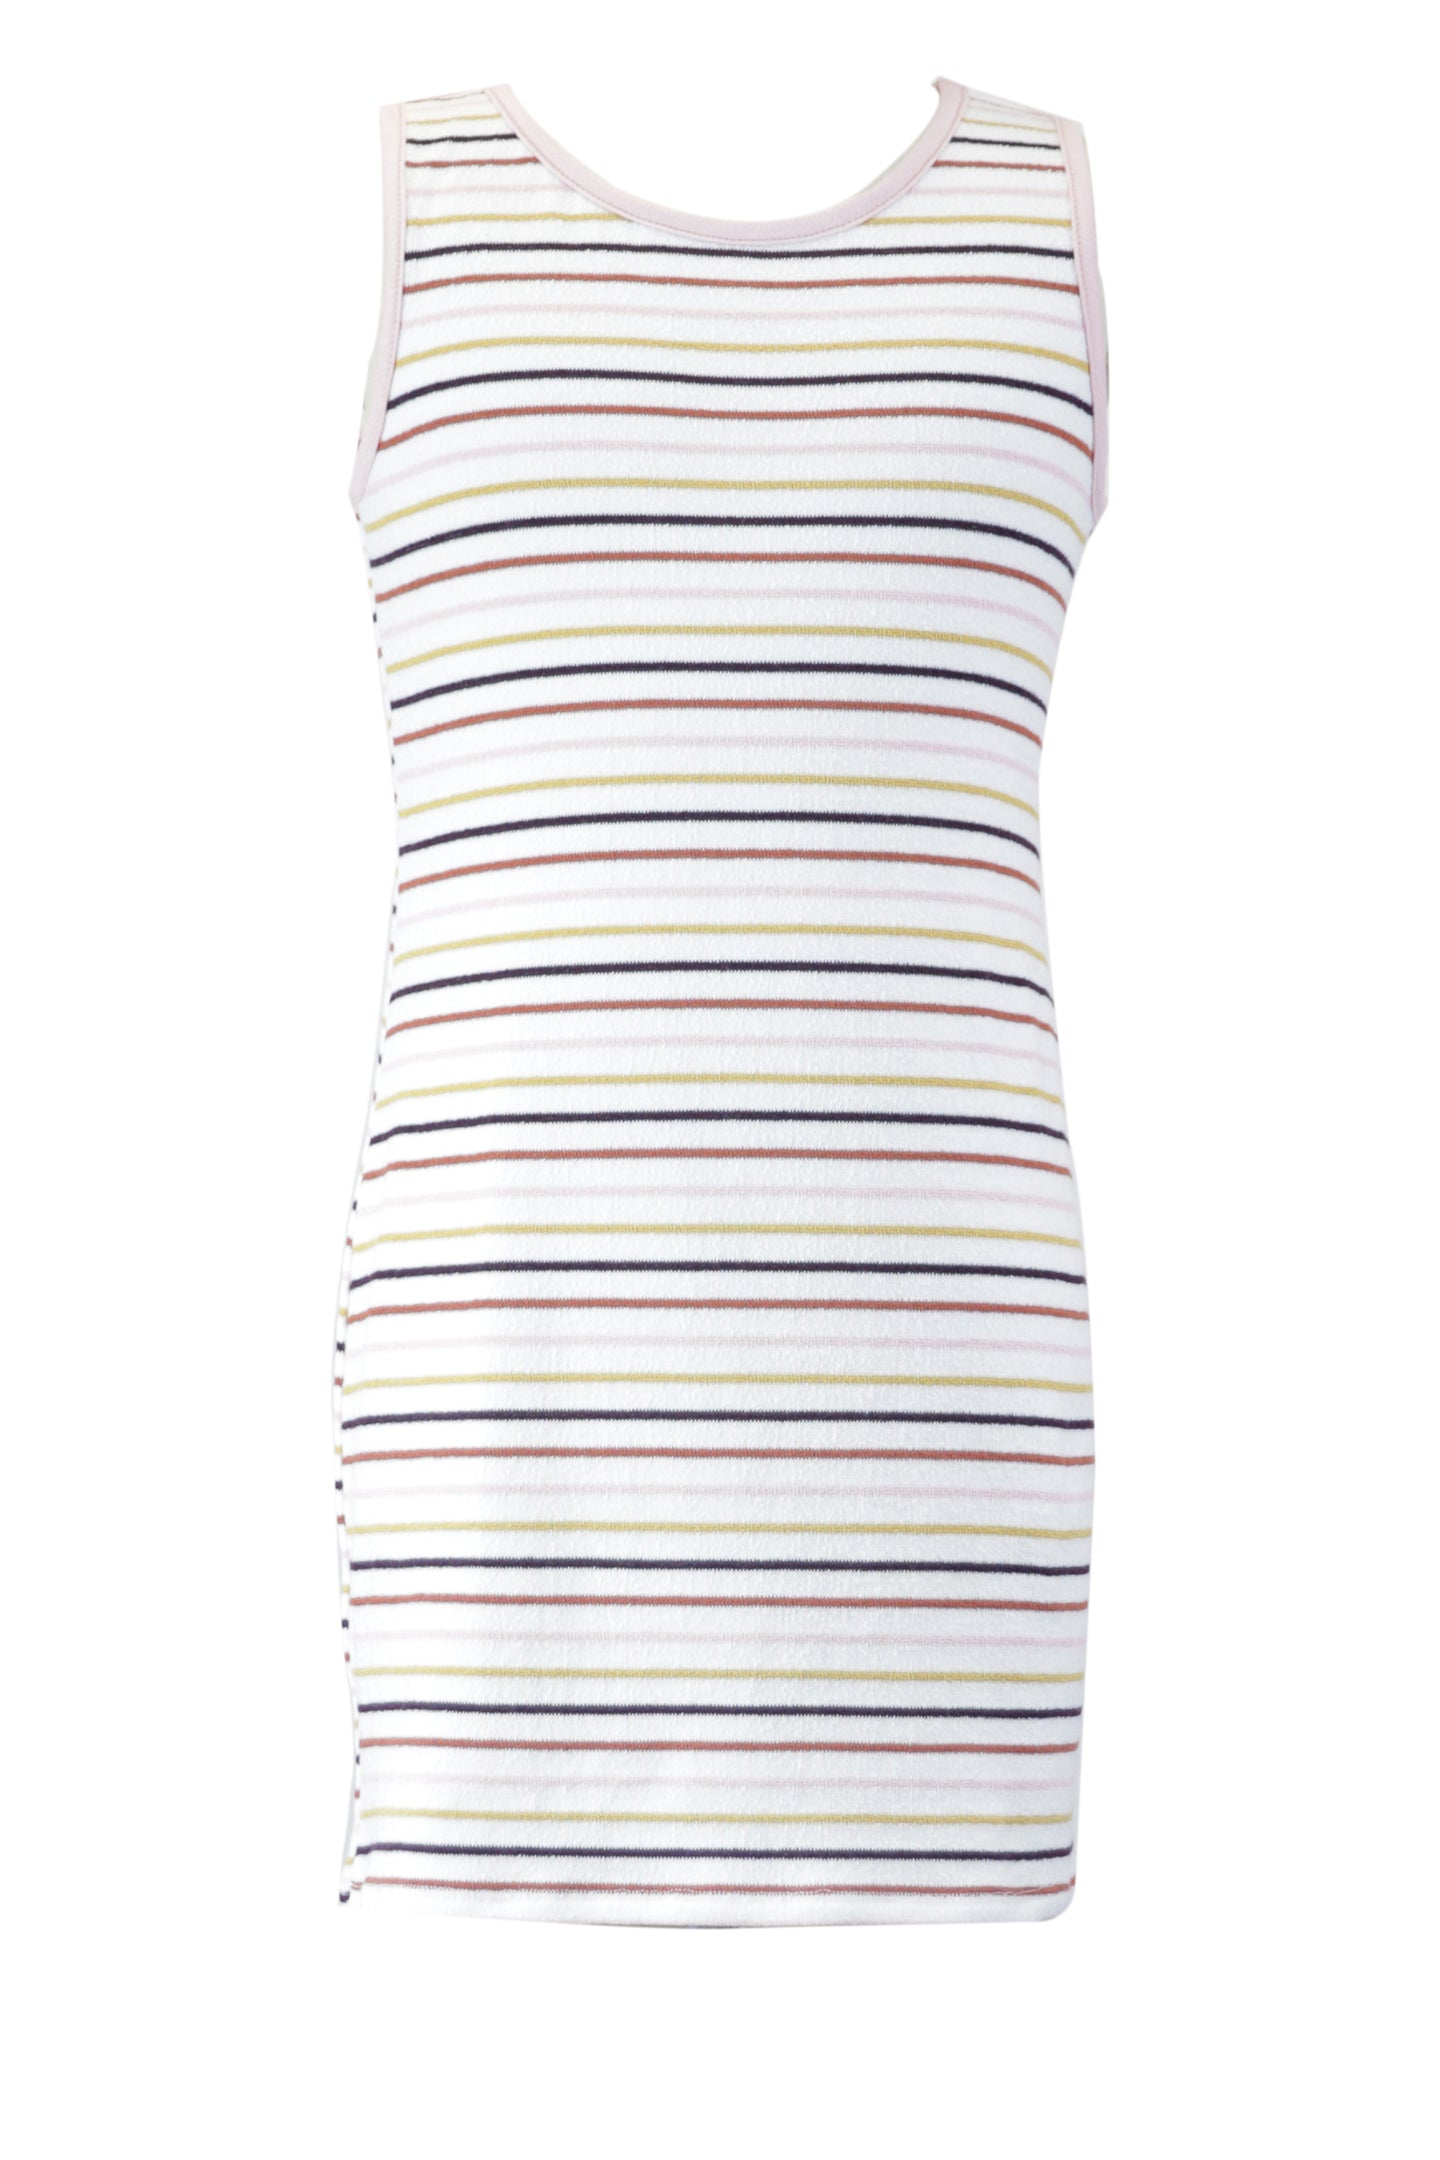 Ivory Striped Terry Loop Dress